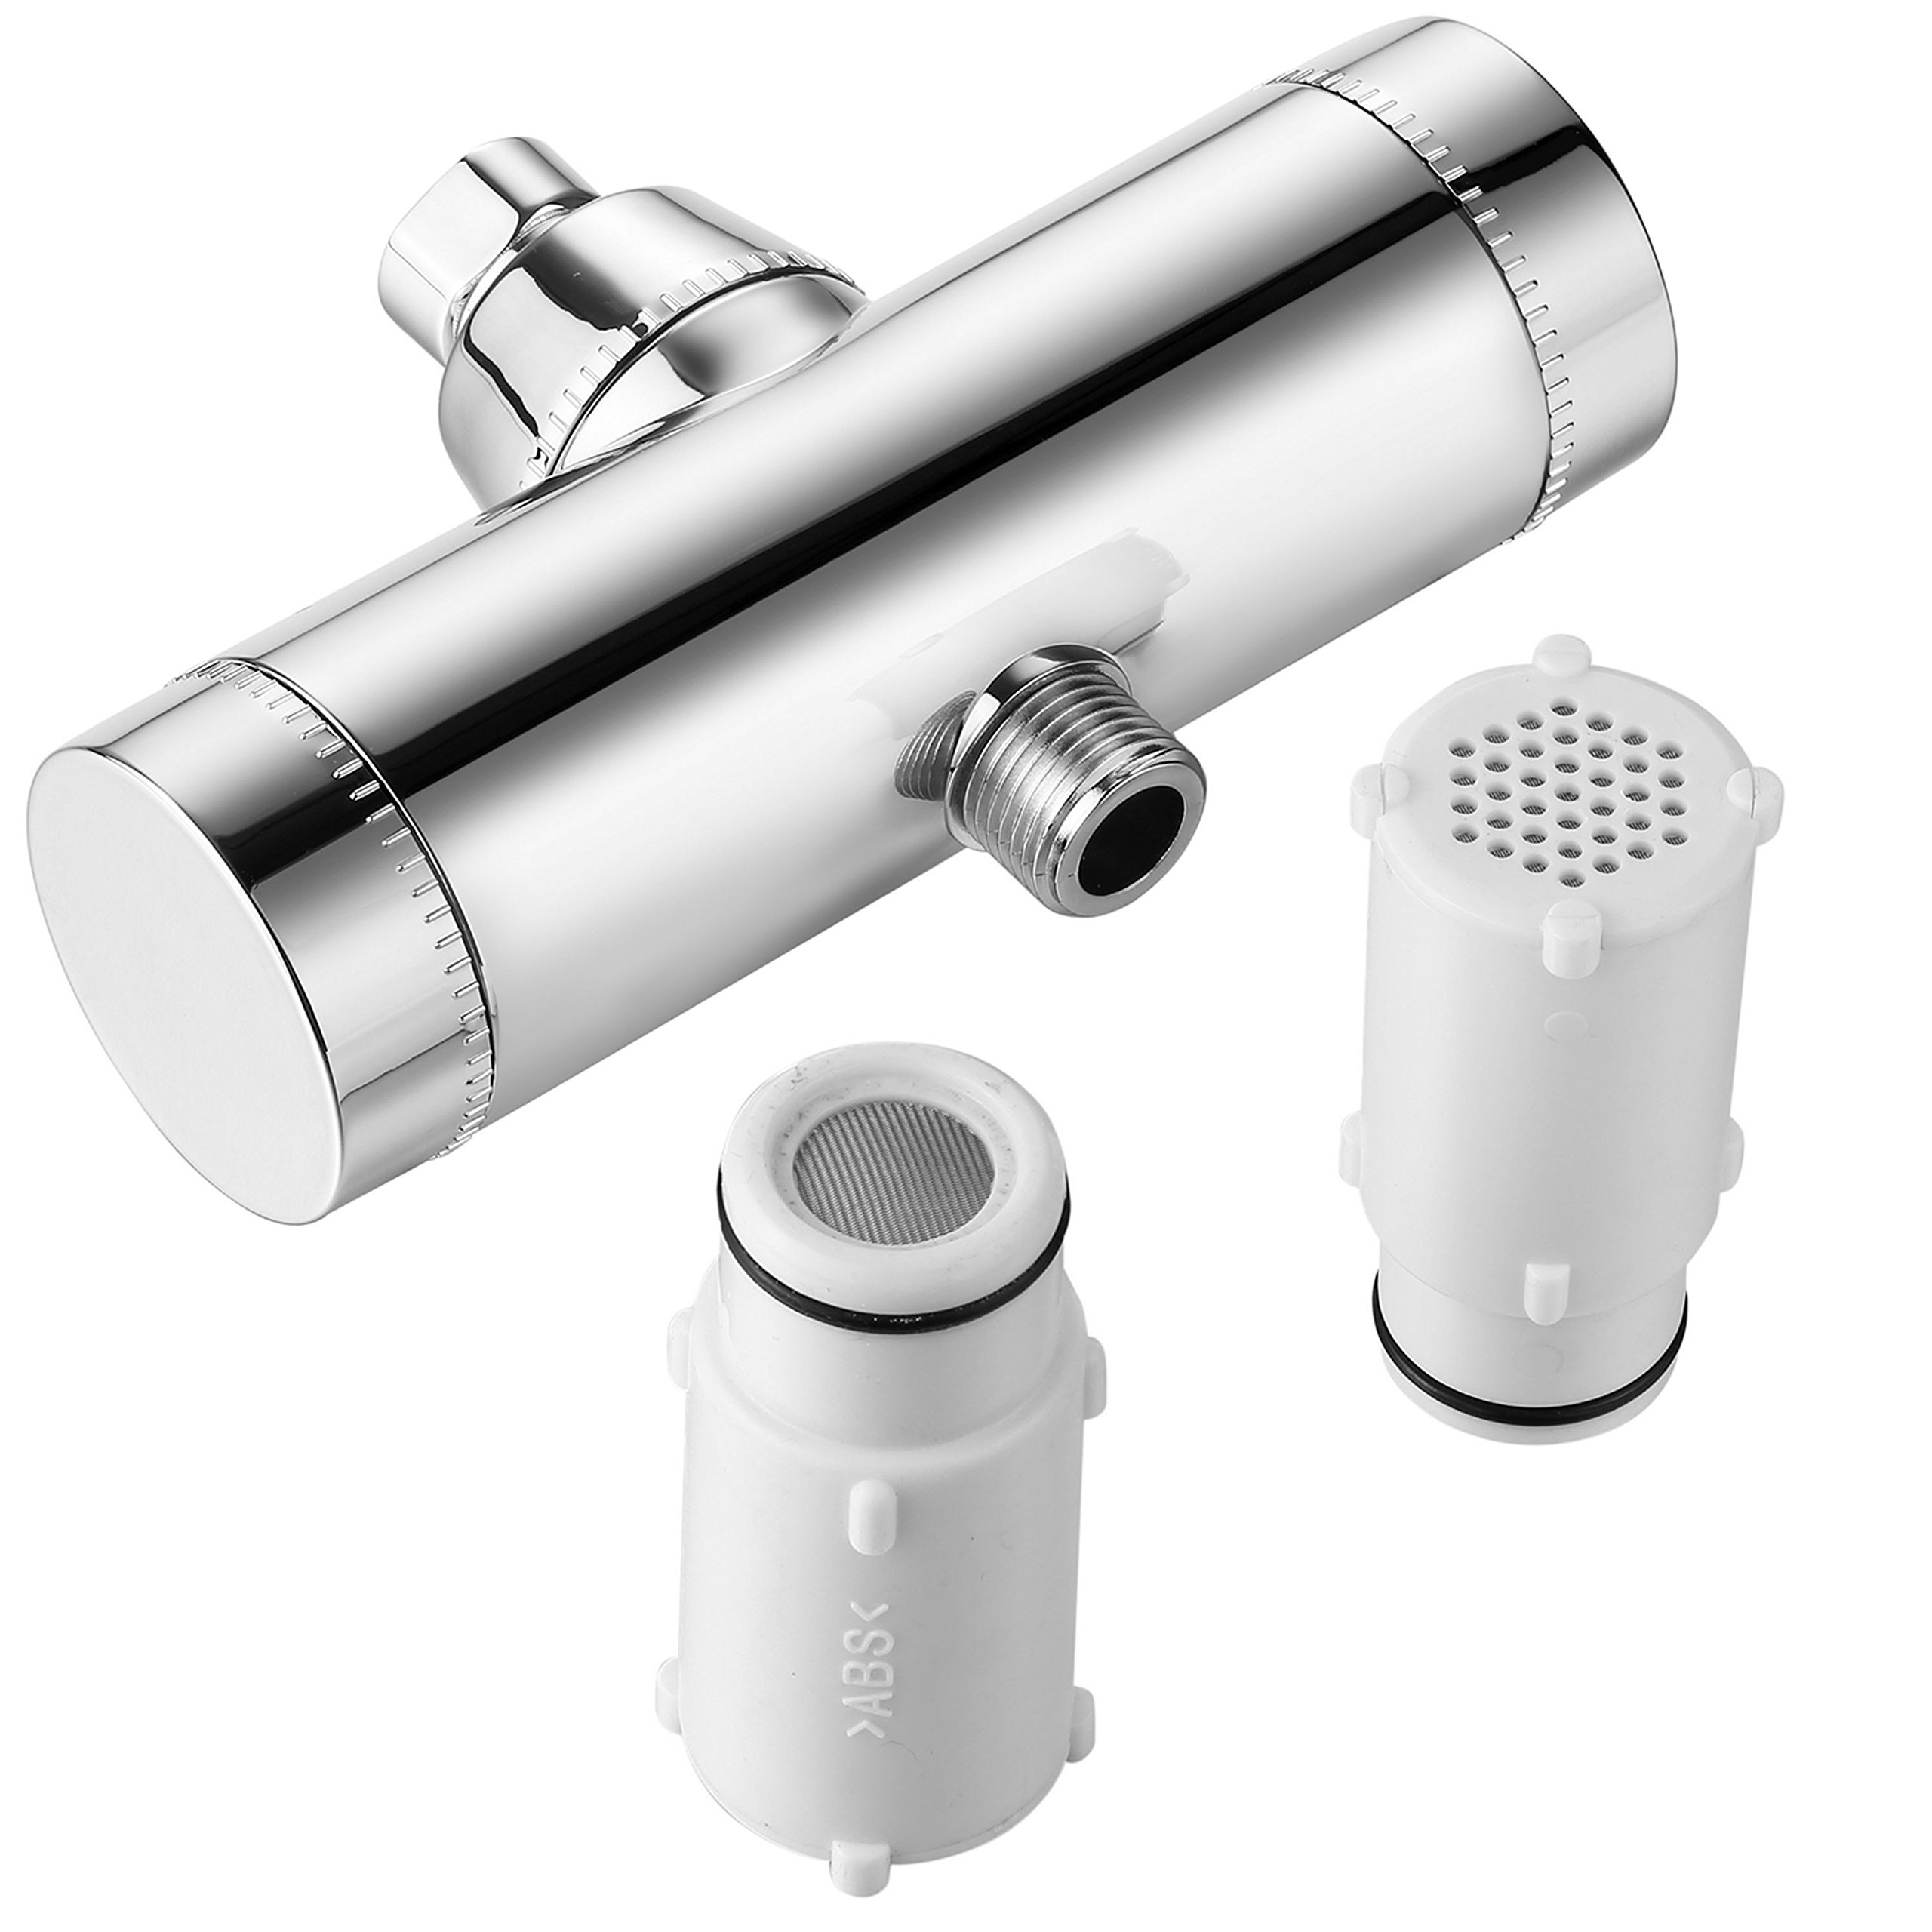 HotelSpa 1127 Dual-Cartridge 8-stage High Performance Shower Filter with Instant Side-Load Design. Enjoy 2X Filtration Power and Superior Water Flow Capacity for More Water Pressure!